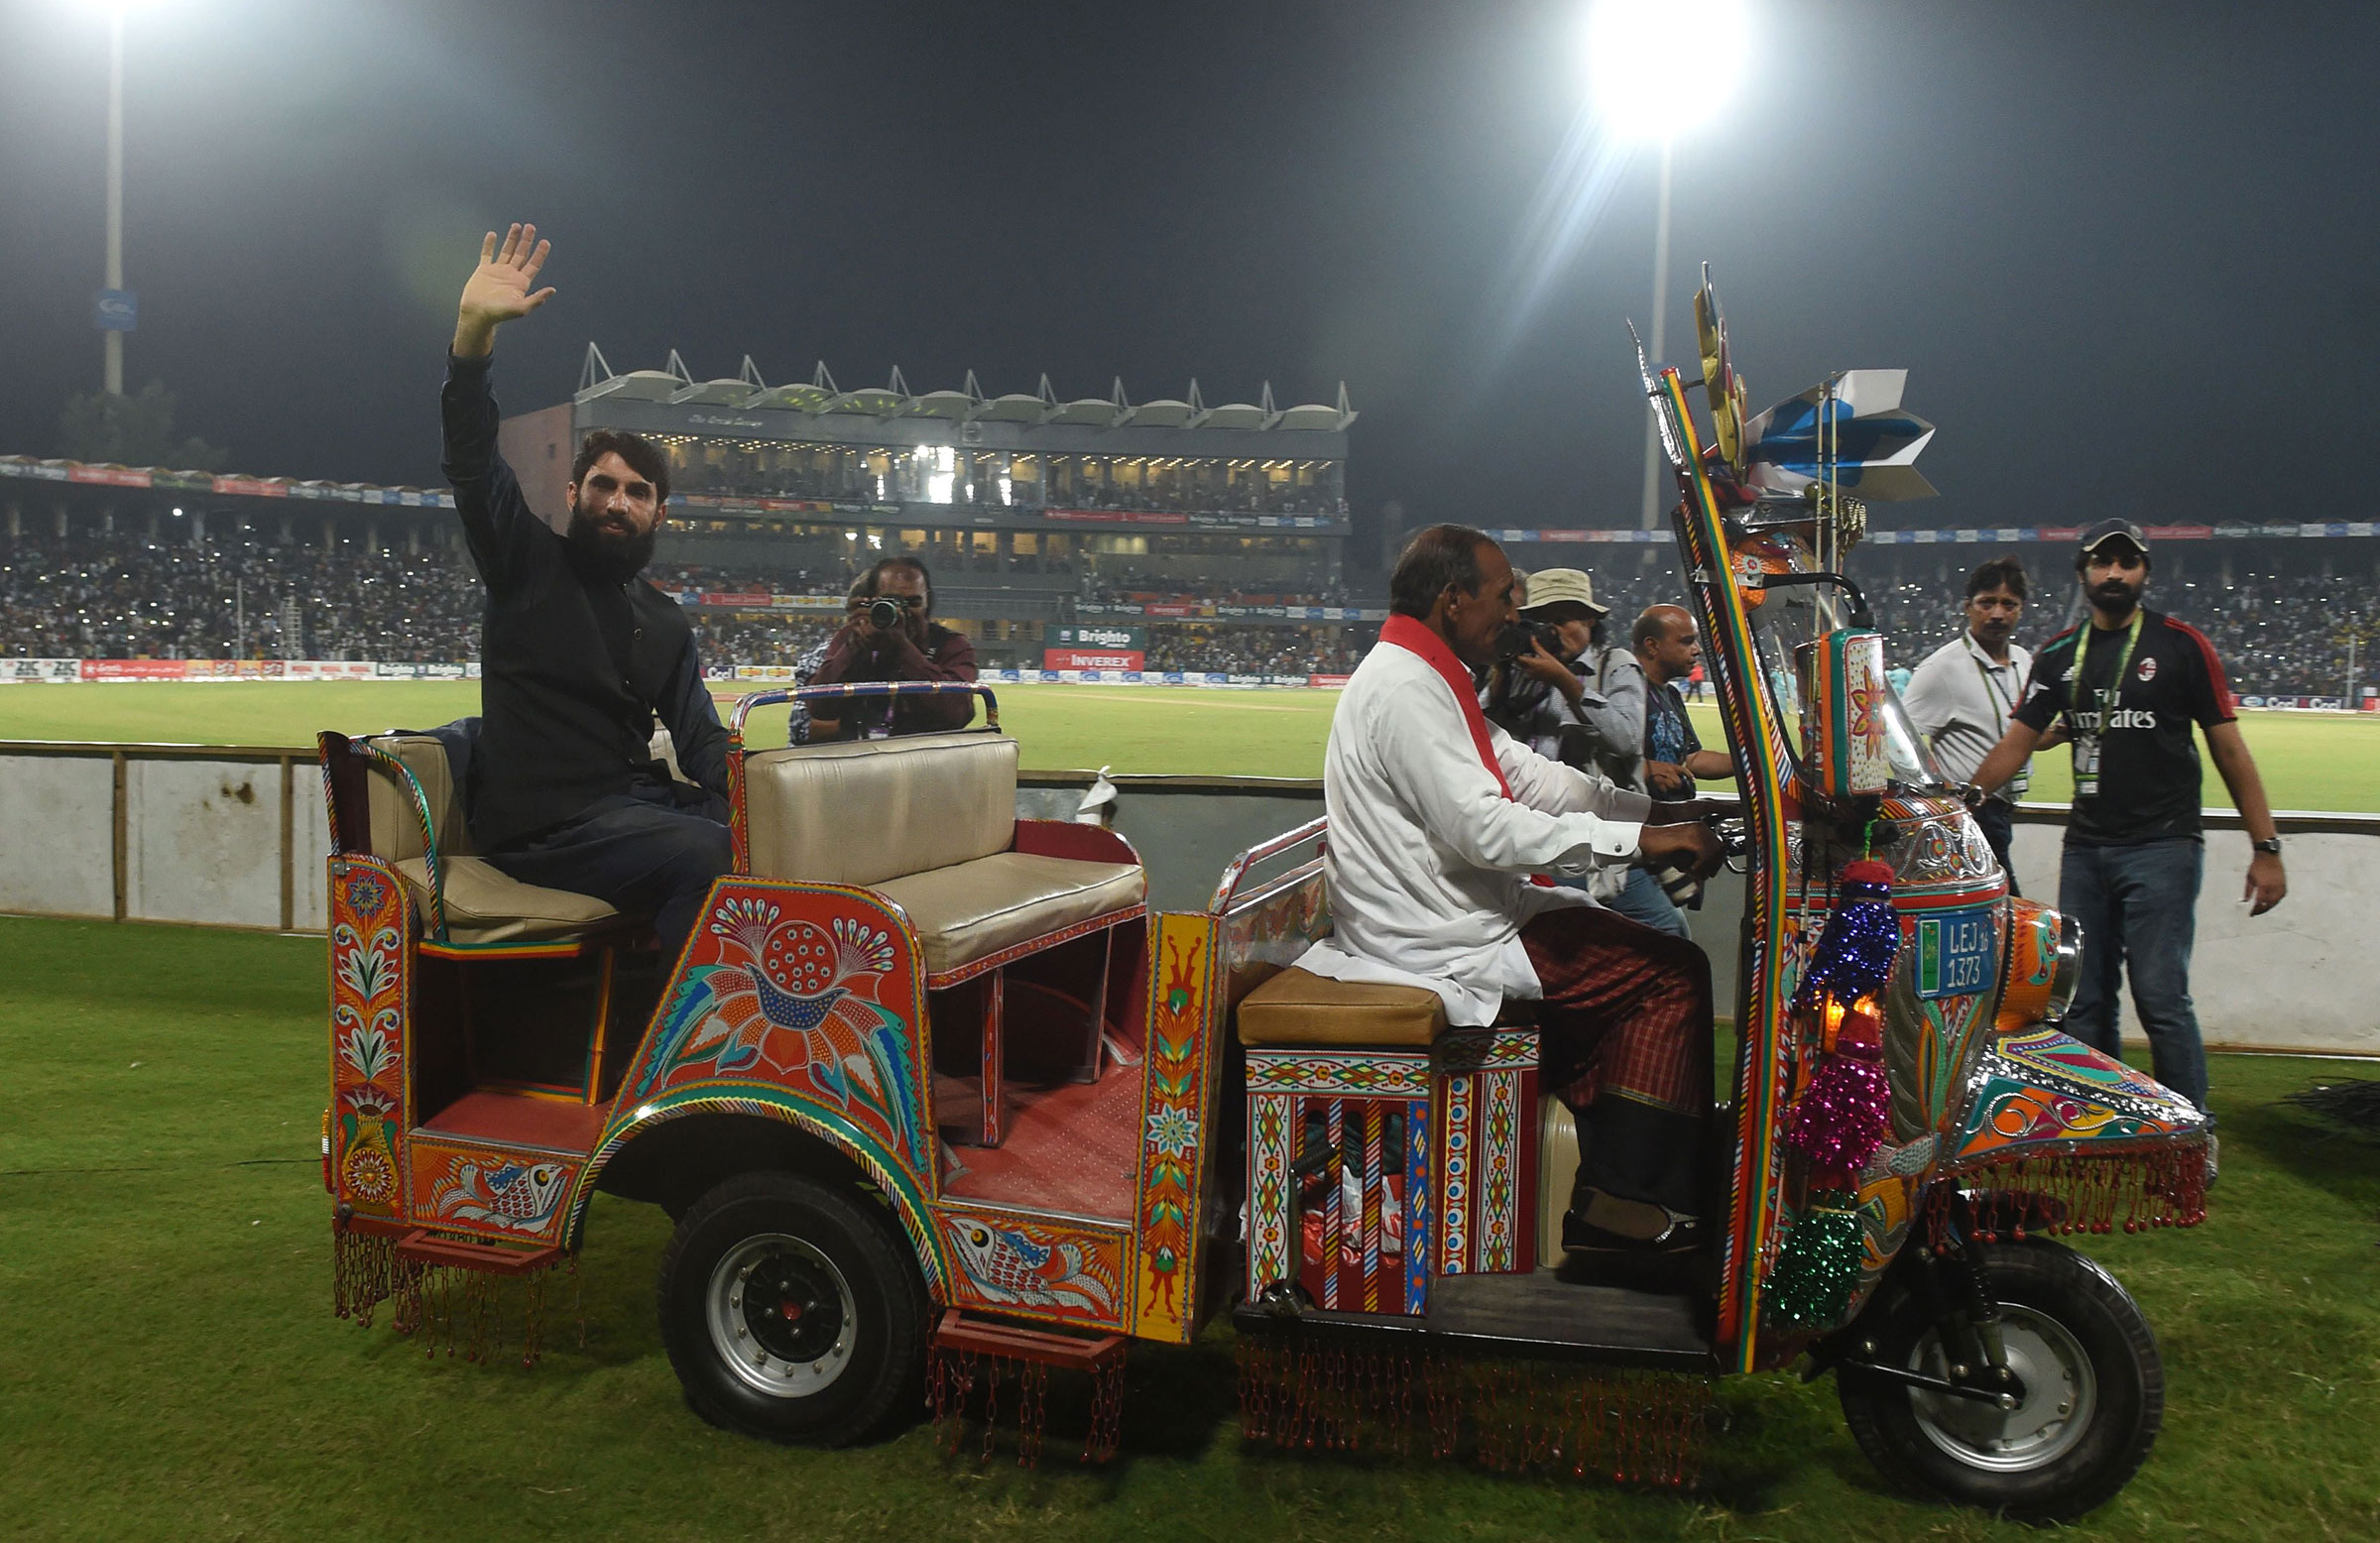 The pCB arranged a lap of honour for retired great Misbah-ul-Haq // Getty